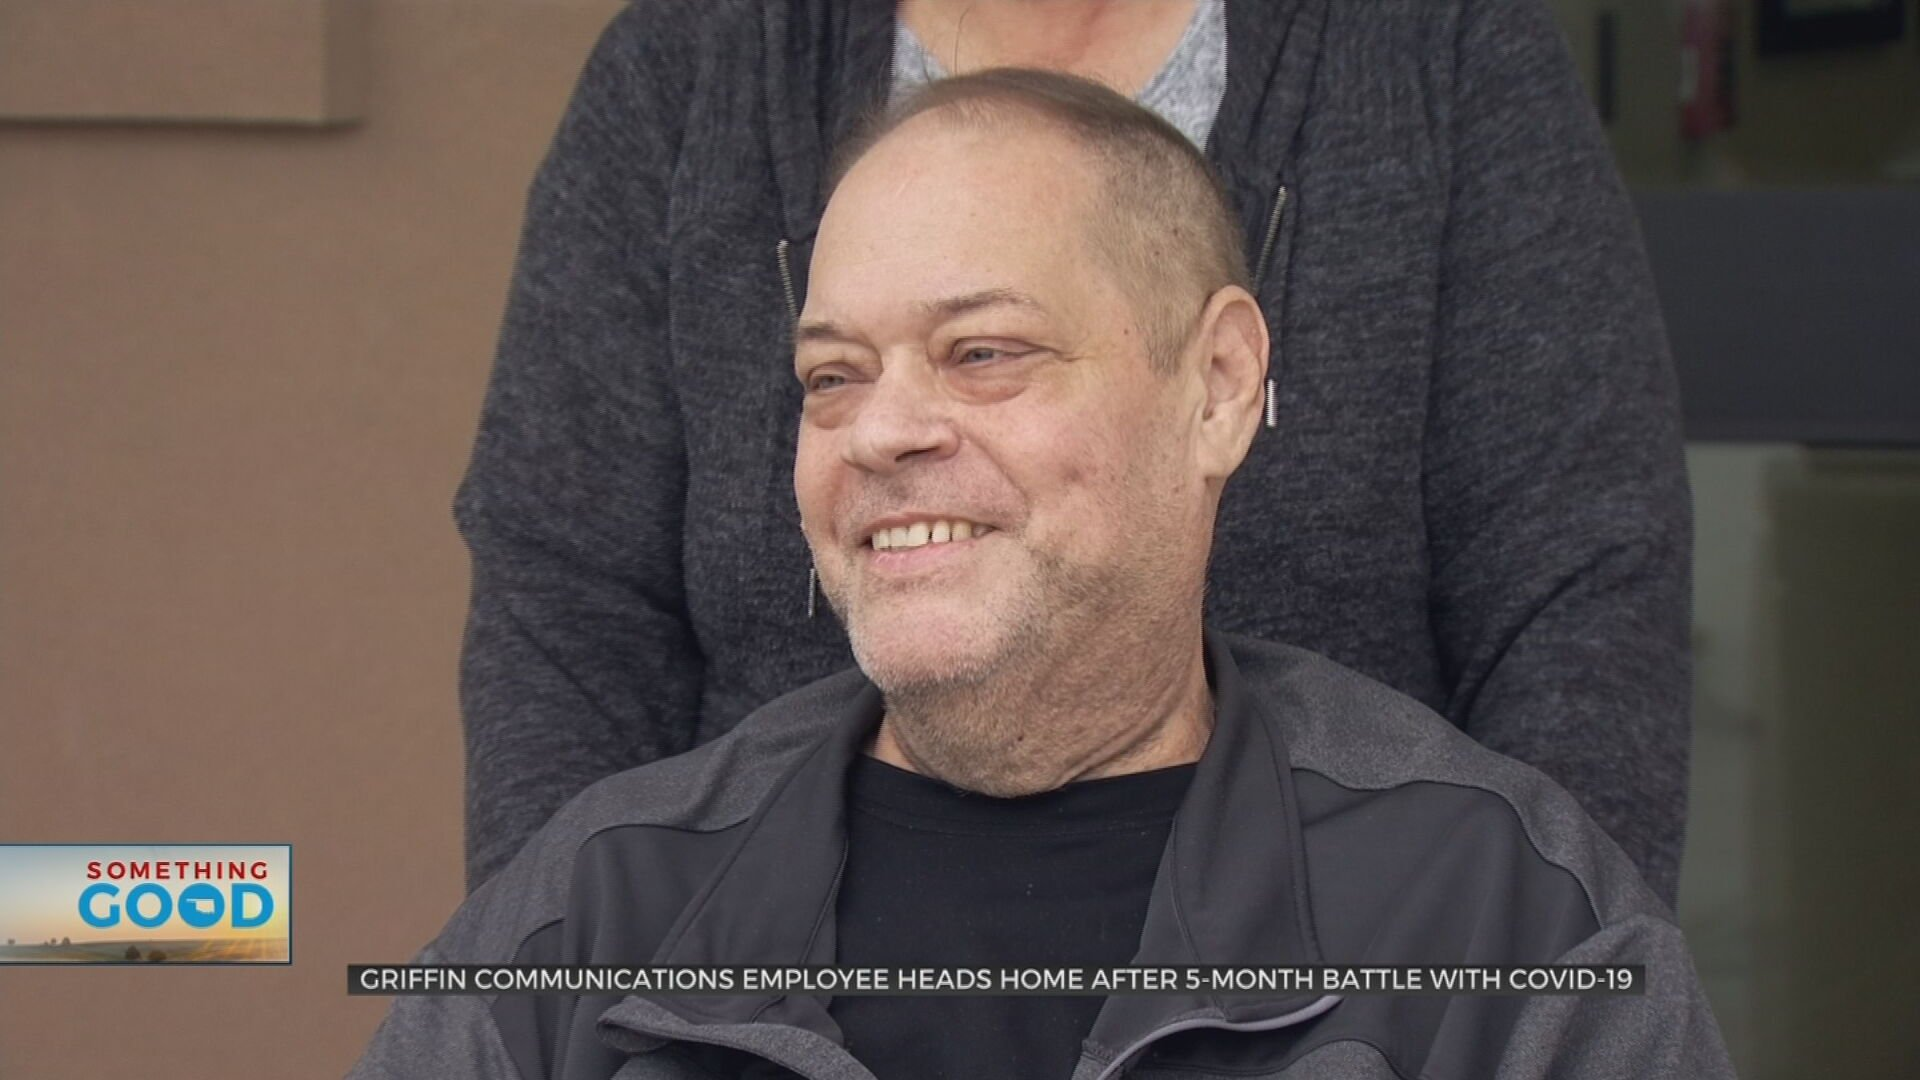 Griffin Communications Employee Home After 5-Month Battle With COVID-19